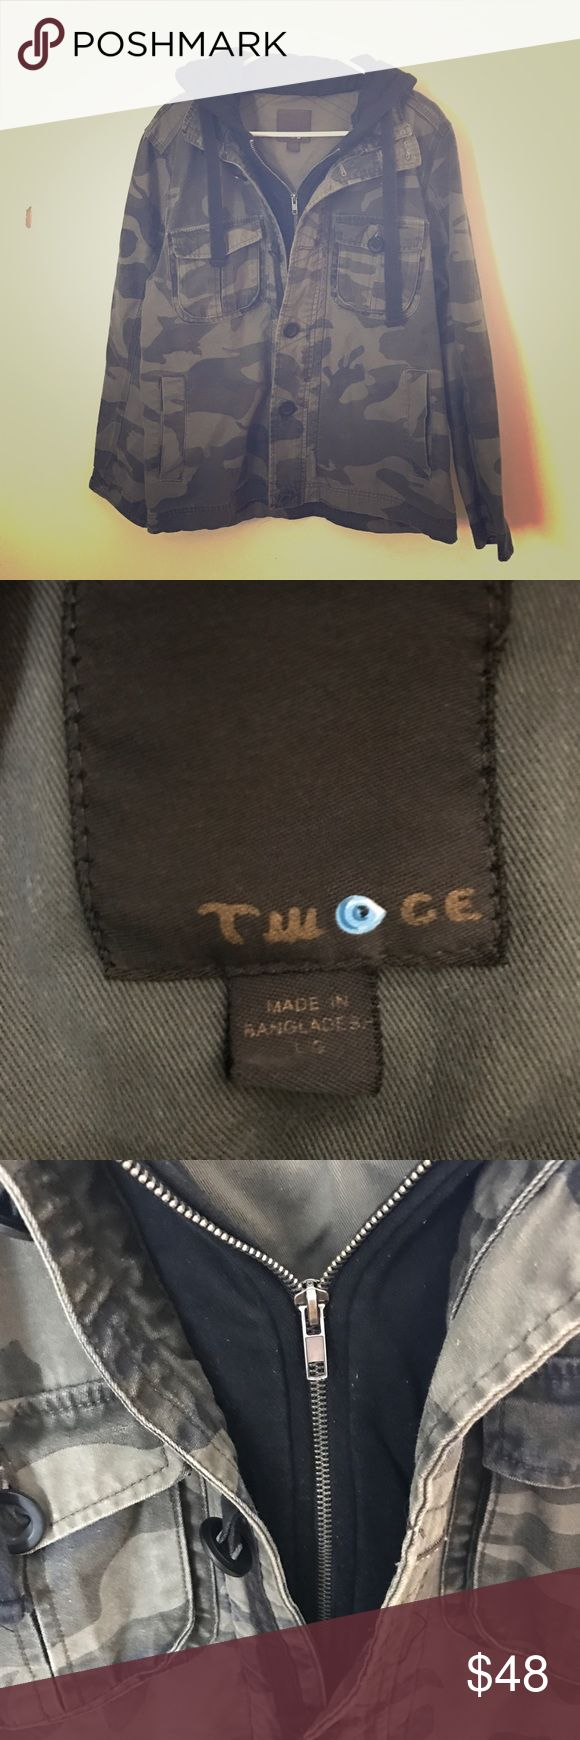 'Twoge' Army Camouflage Jacket with Hoodie This jacket is made by 'Twoge' and has an attached black hoodie inside. There are buttons and pockets. It's very warm and cozy and in good condition. From a non smoking home. Fast 💨 shipping. Jackets & Coats Utility Jackets